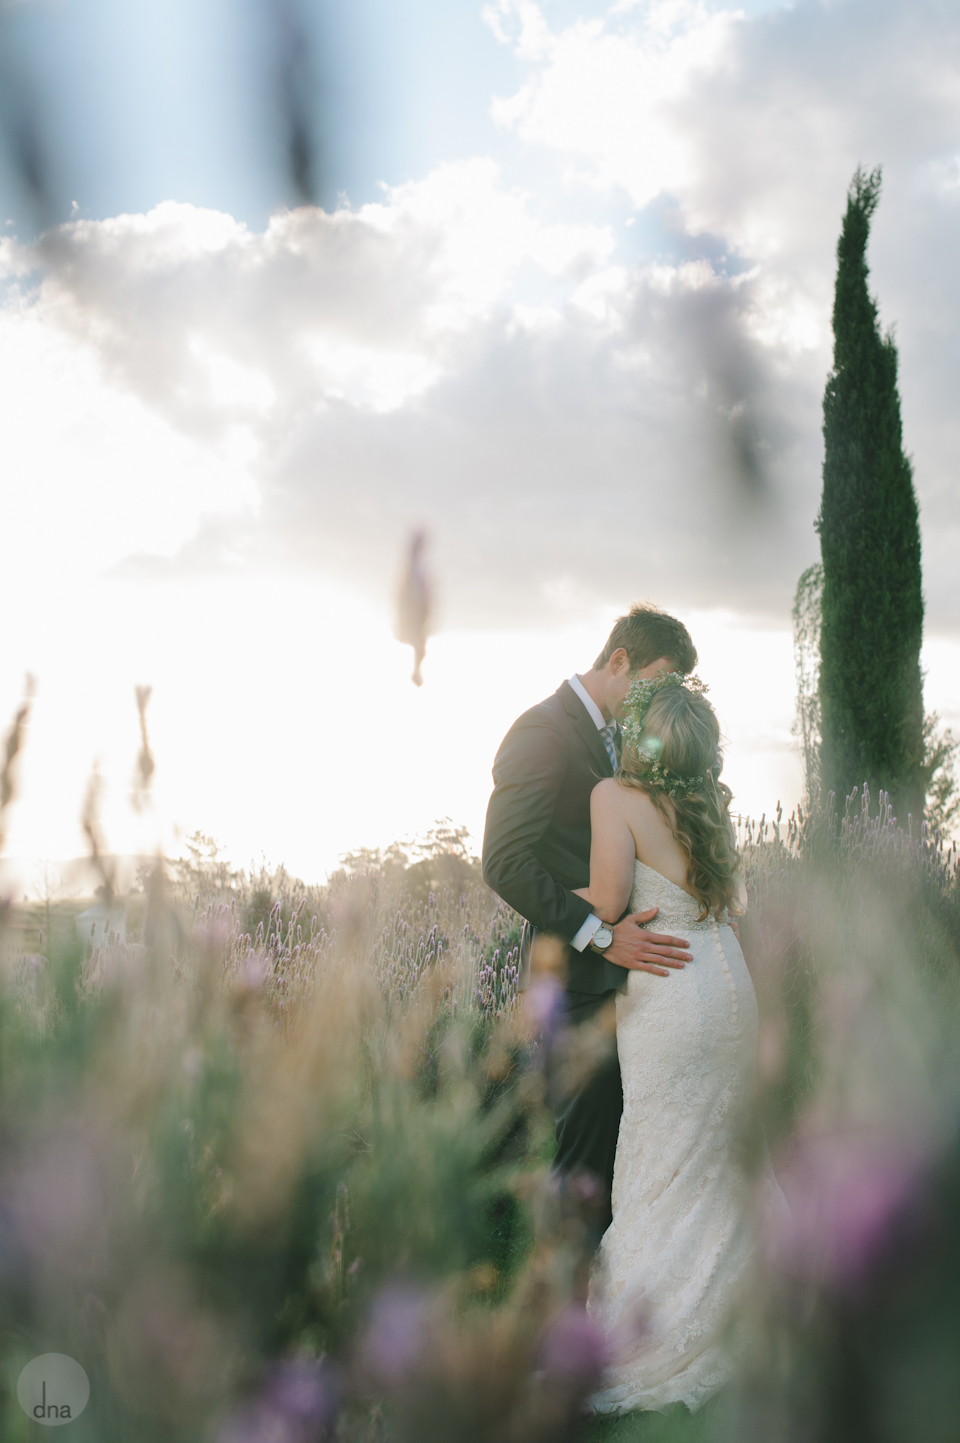 Amy and Marnus wedding Hawksmore House Stellenbosch South Africa shot by dna photographers_-770.jpg